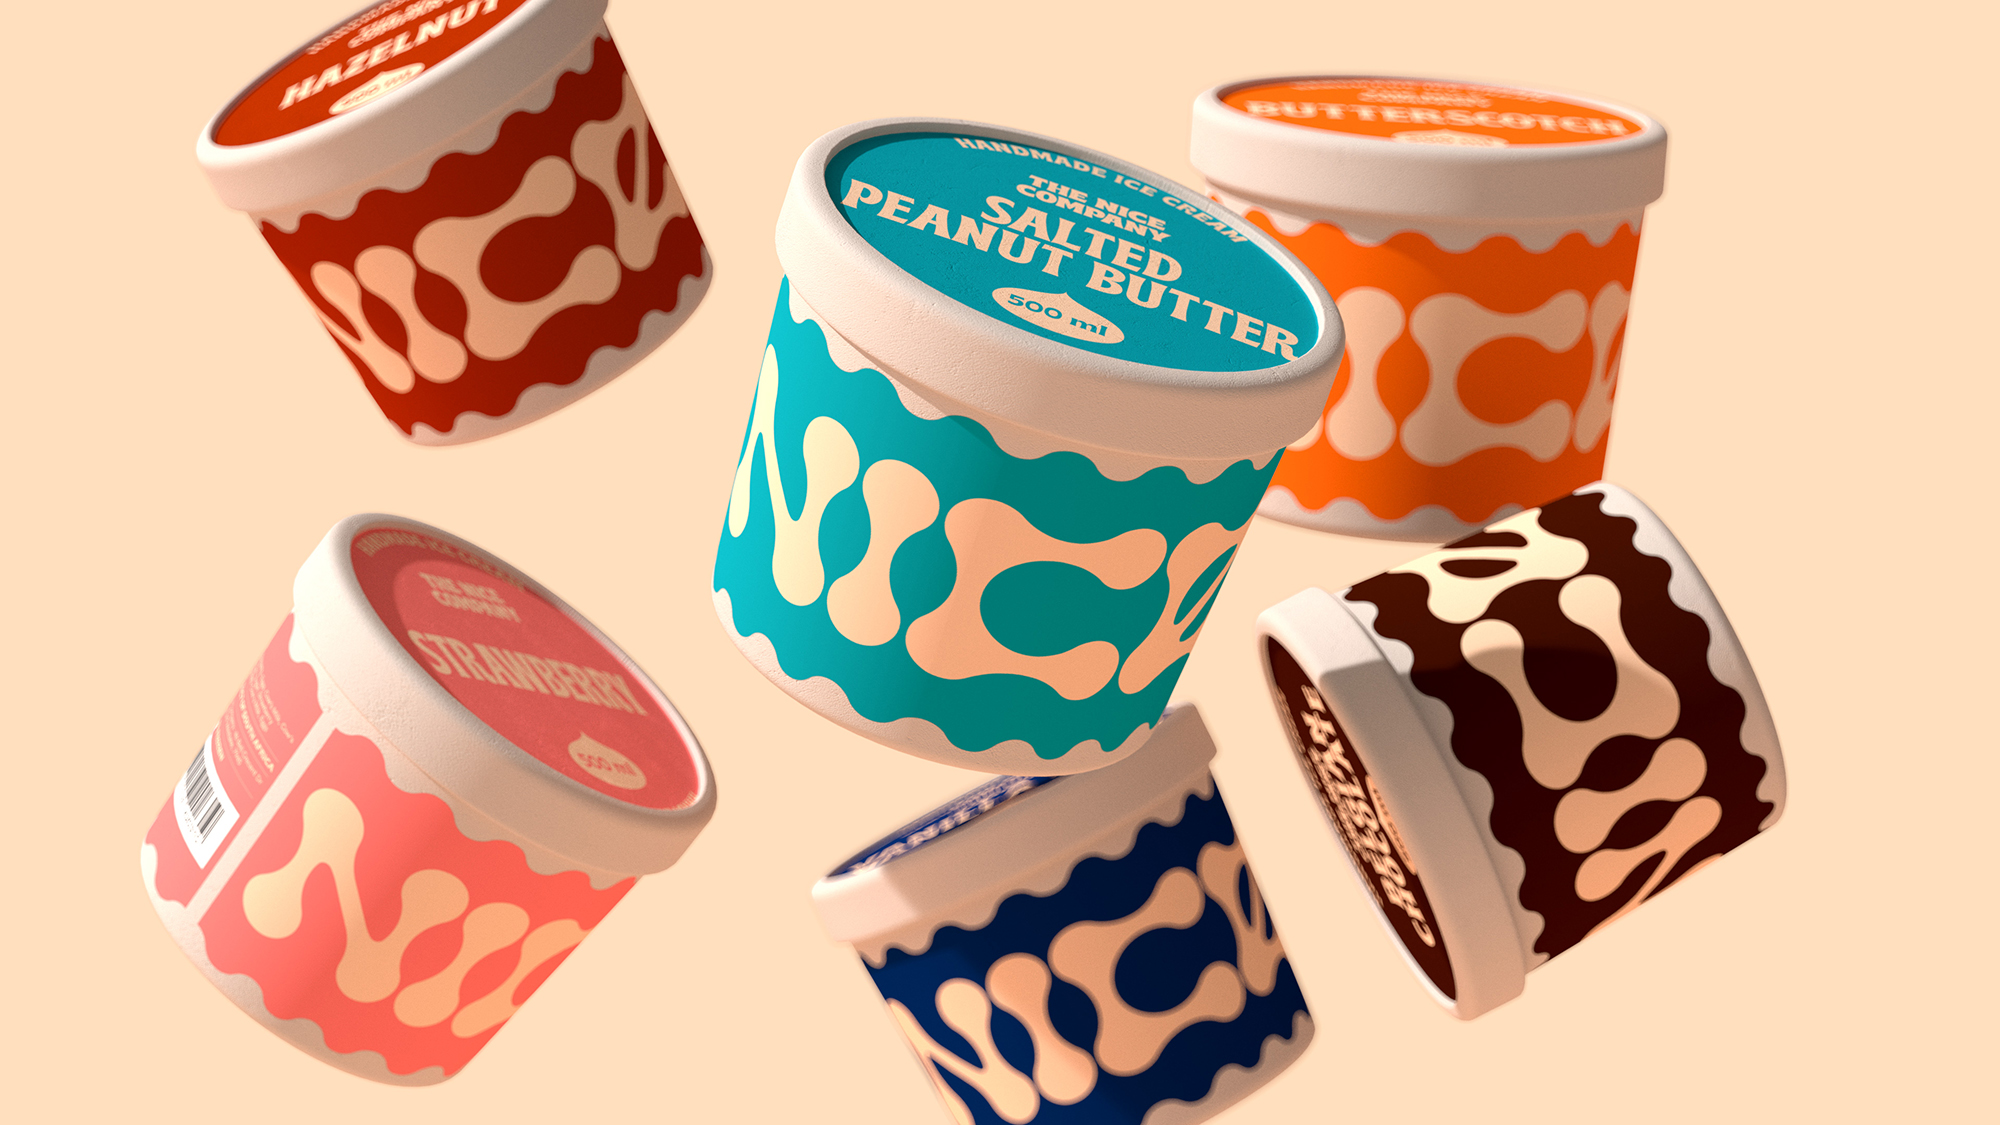 Parners in Crime Ice Cream Brand and Packaging Design for The Nice Company